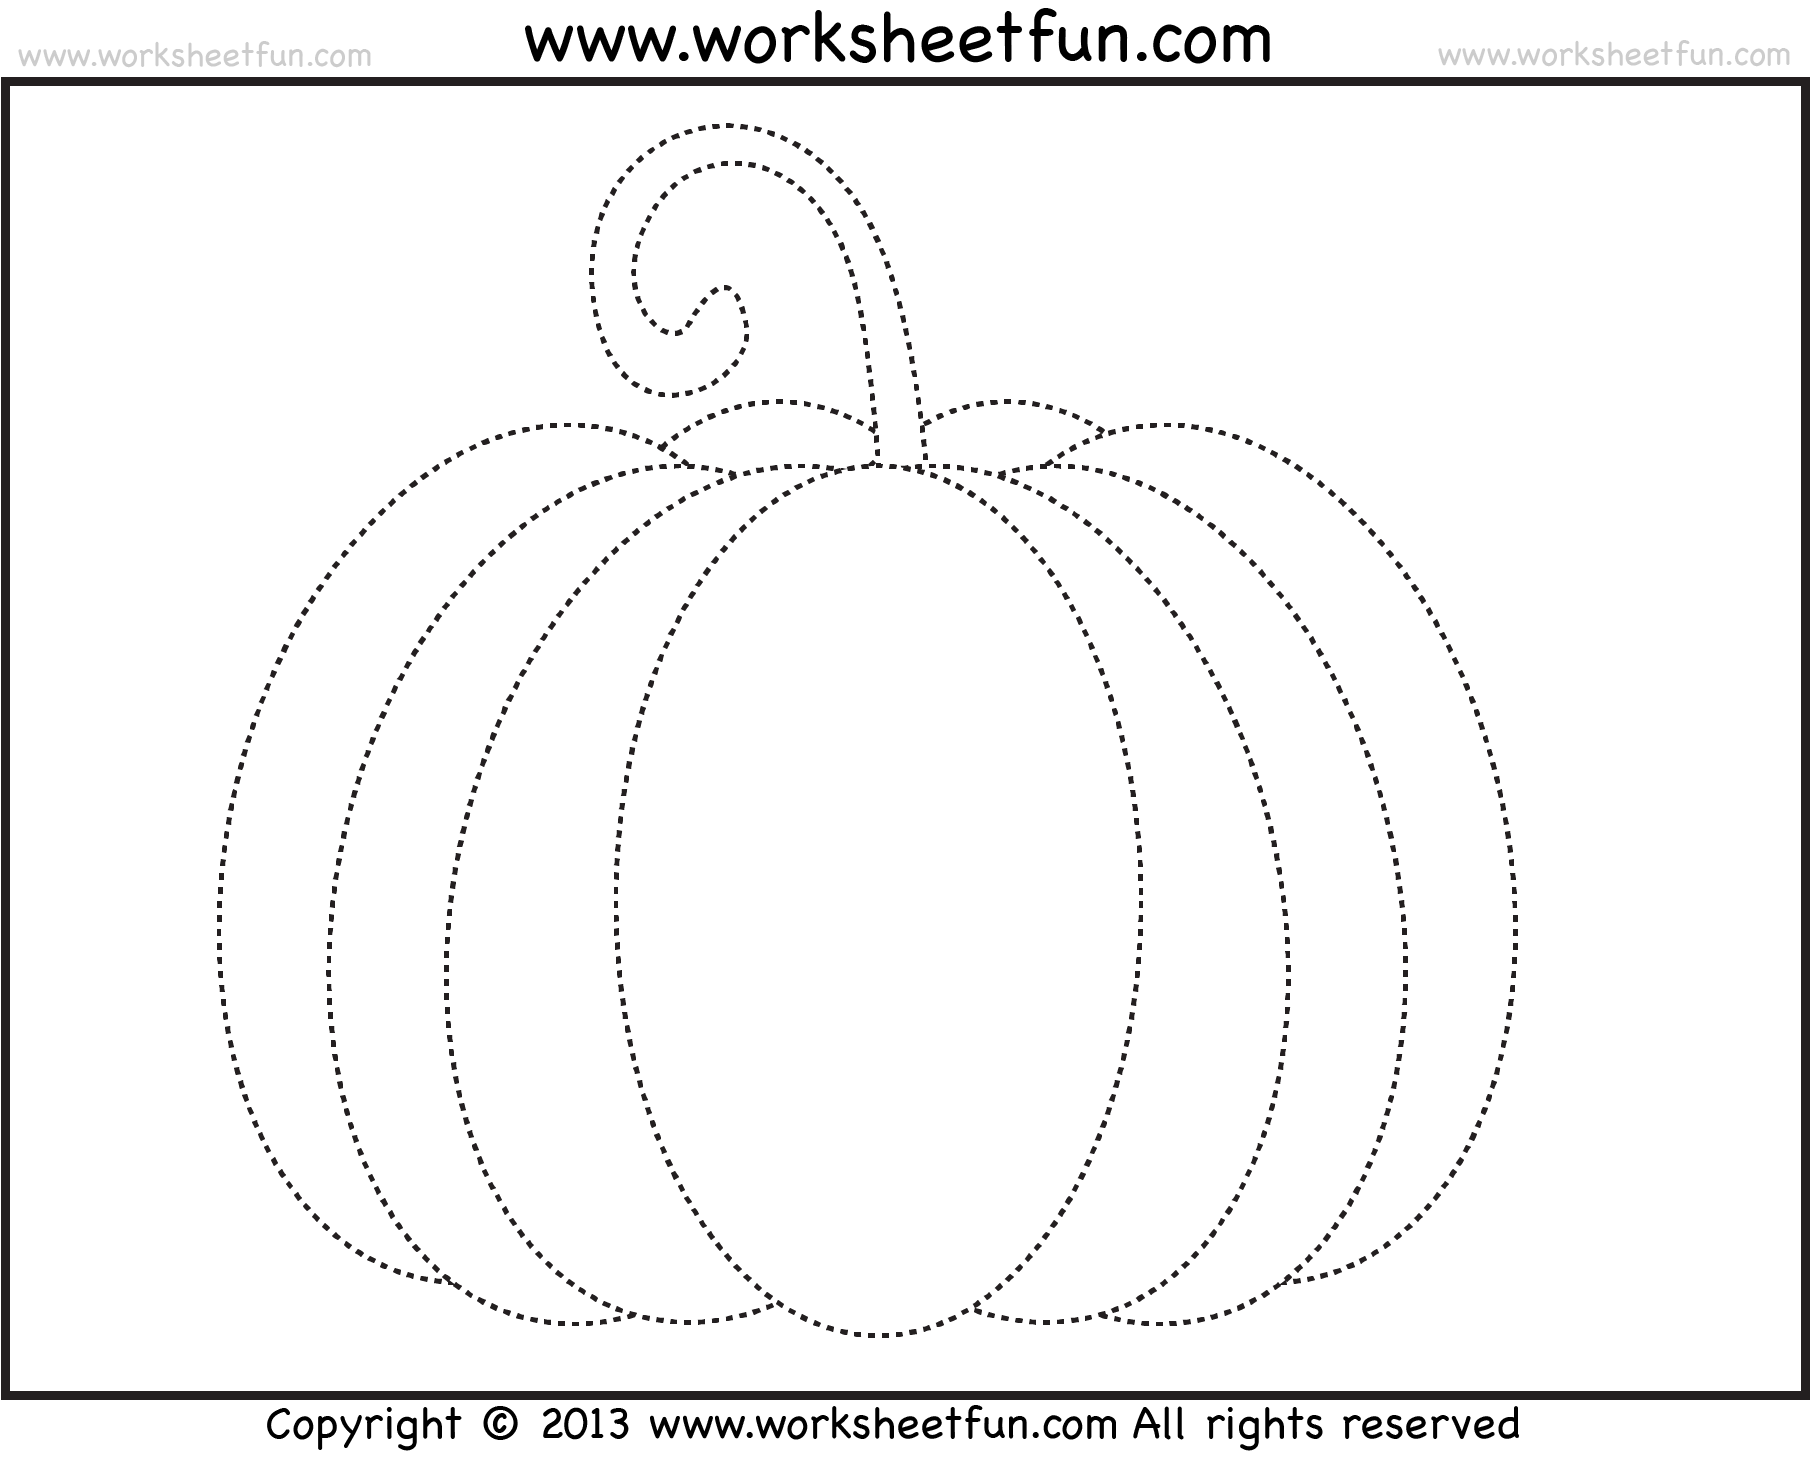 Halloween Pumpkin Tracing Wfun 1 1 810 1 462 Pixels